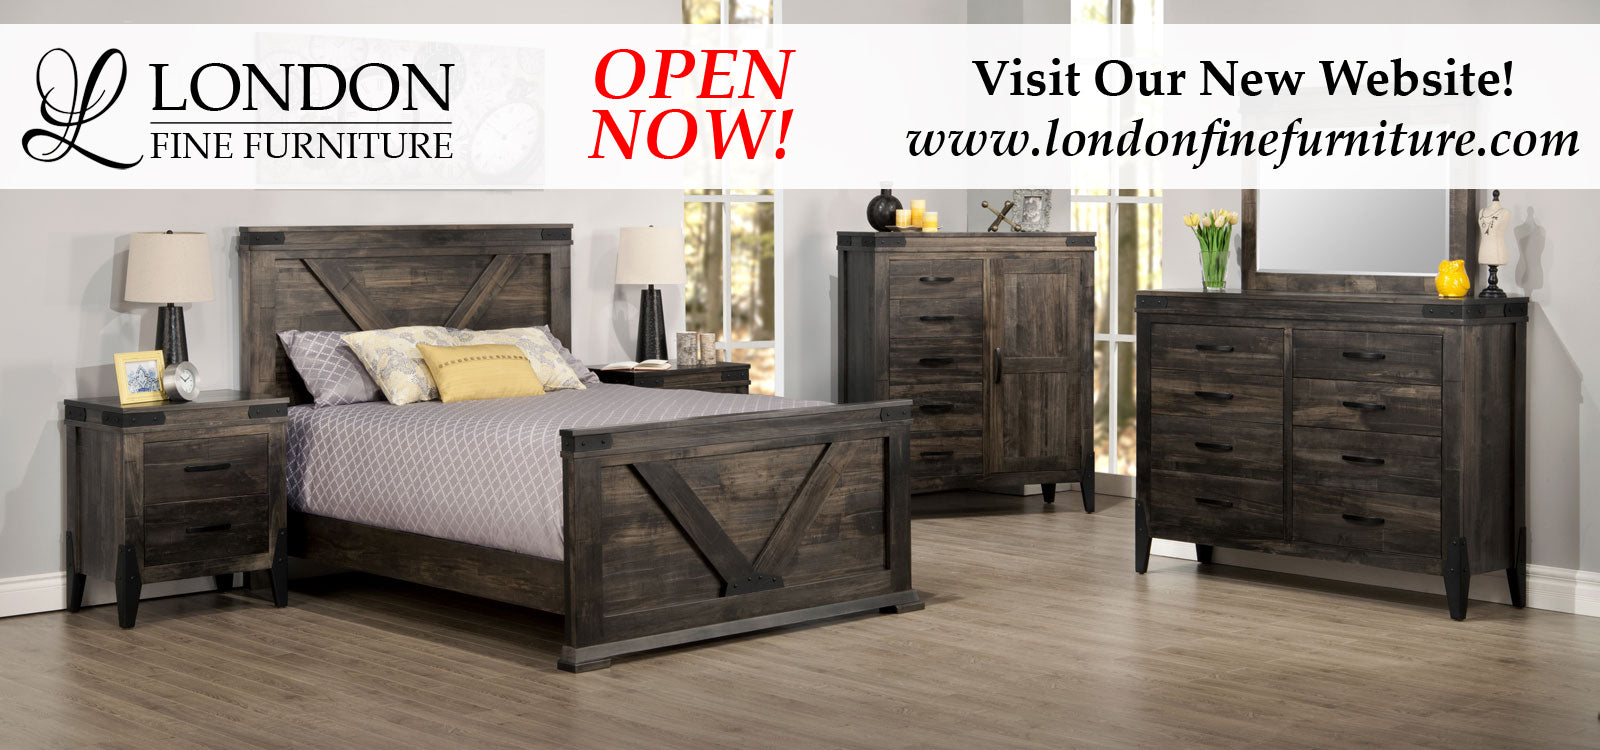 Baby cribs london ontario - London Furniture Store